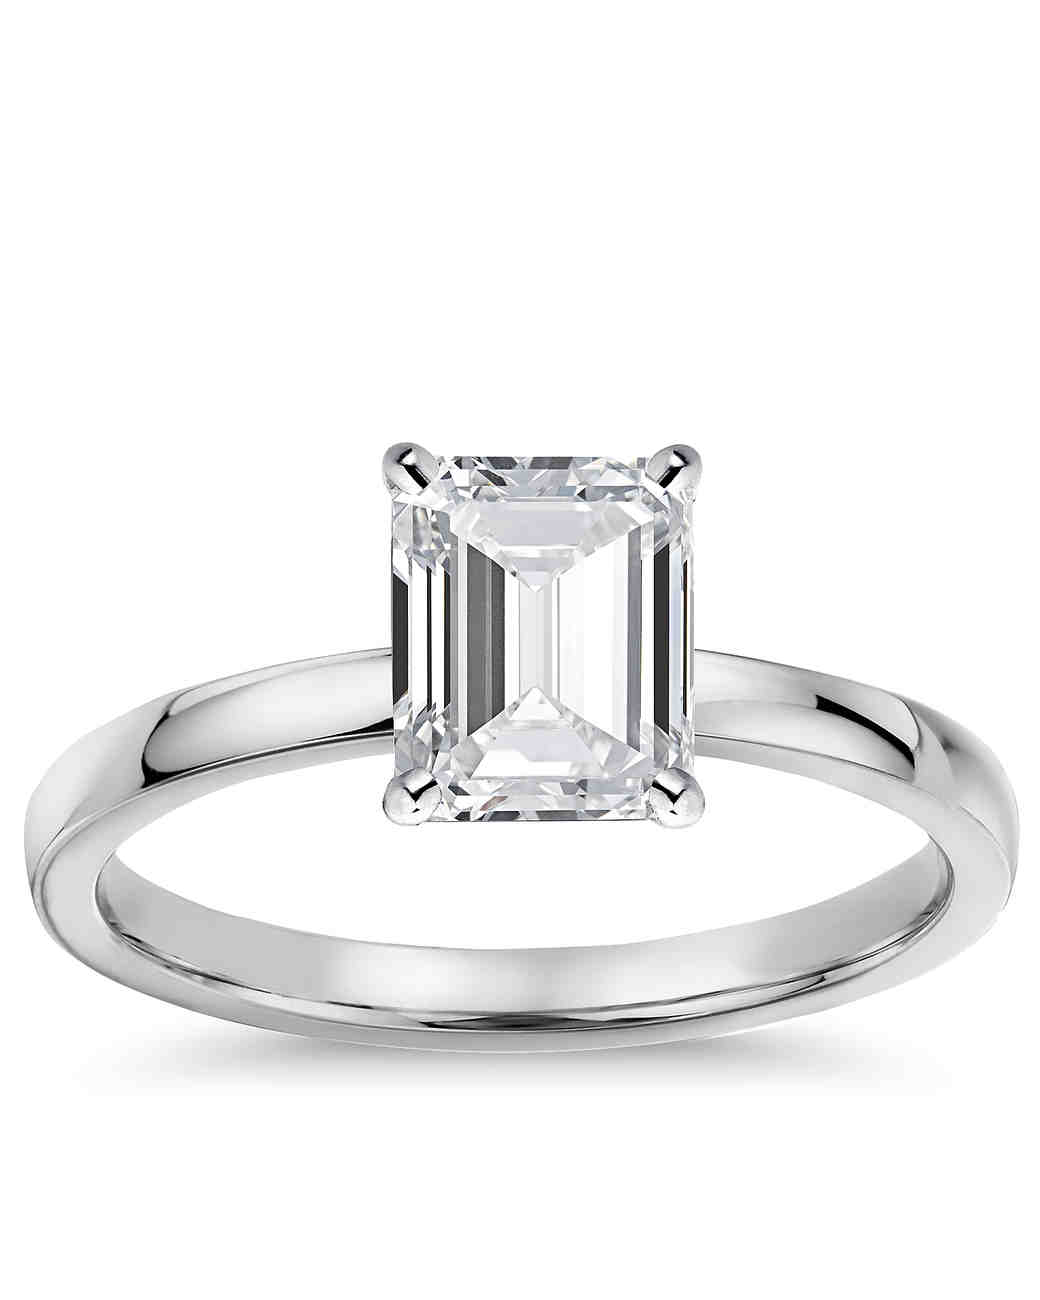 Blue Nile Emerald-Cut Engagement Ring